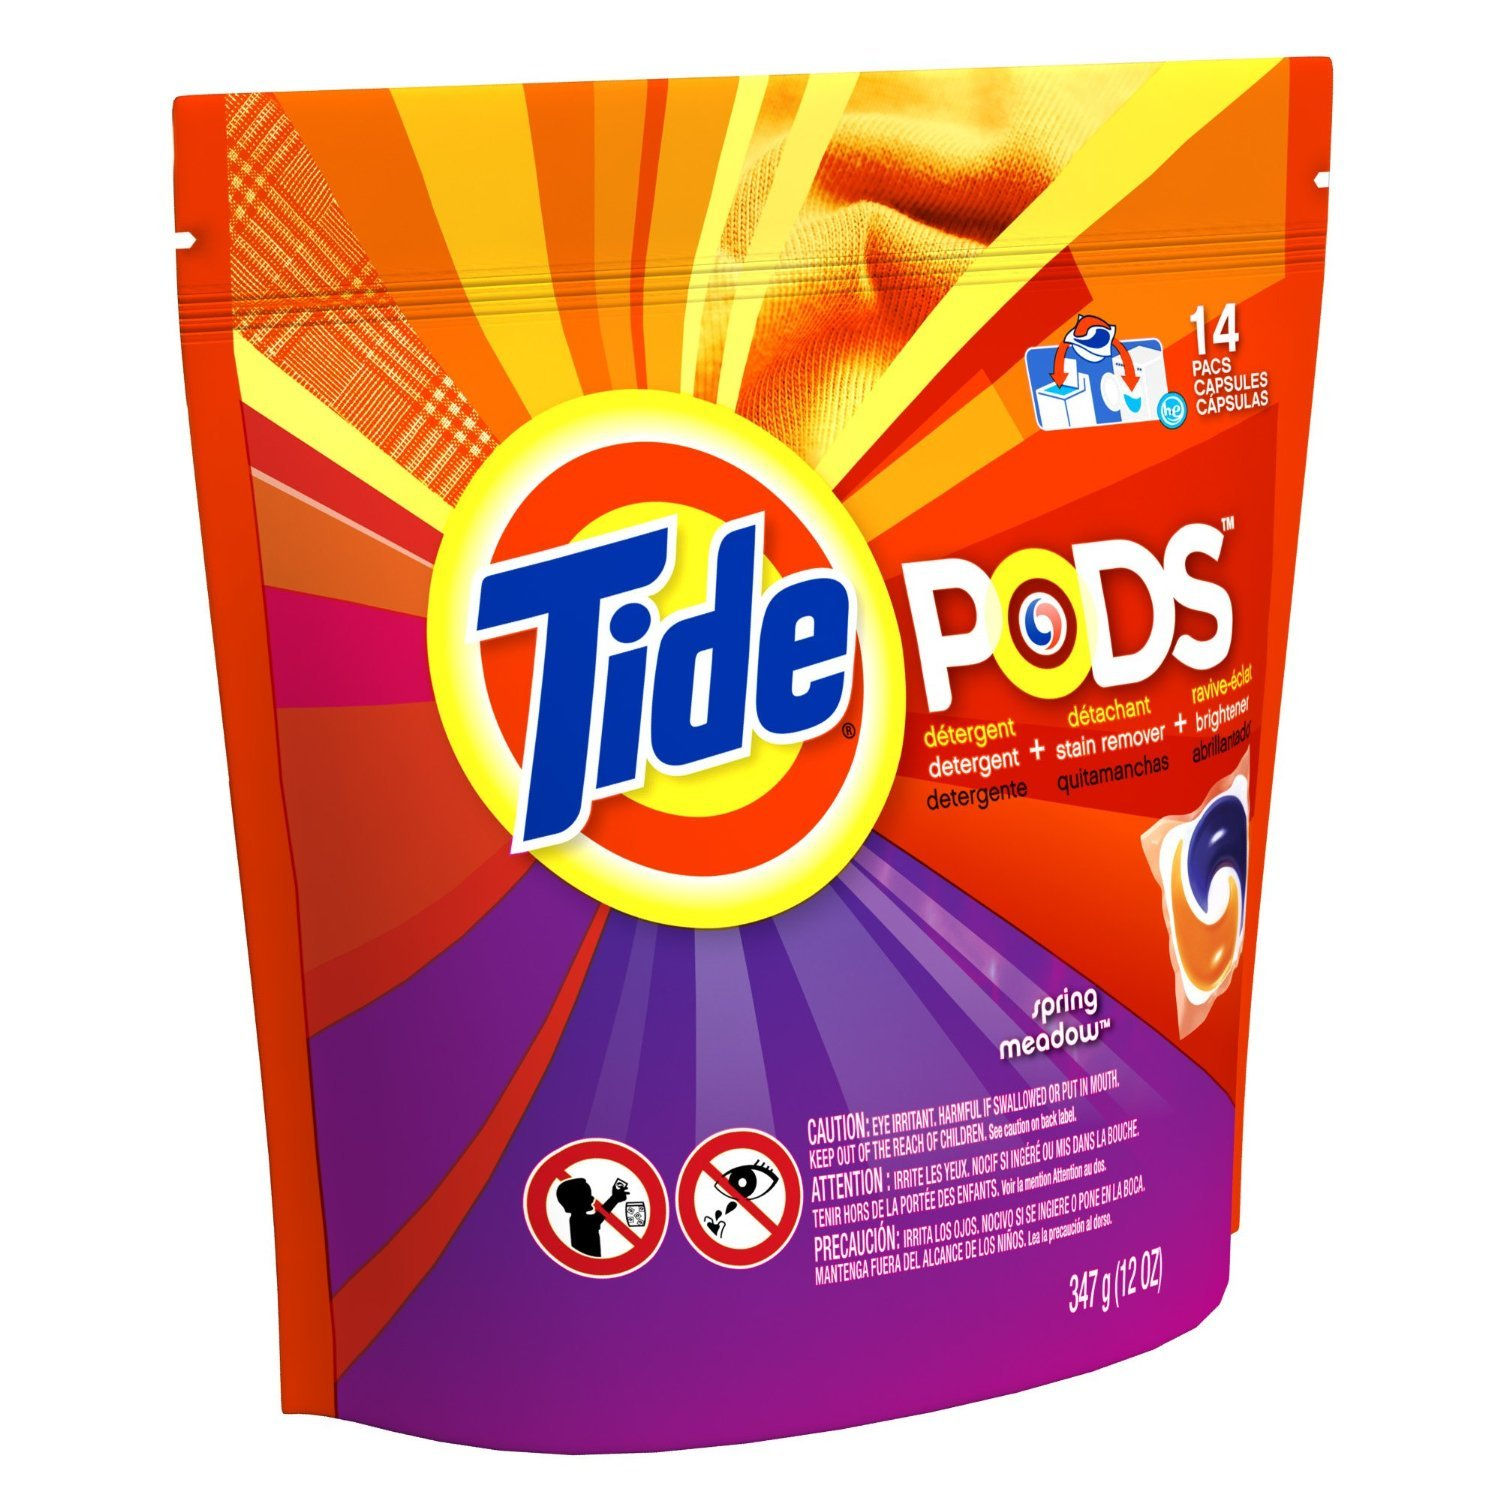 Tide PODS Laundry Detergent HE, Spring Meadow - 14 ct pkg (2 pack) despicable me 2 battle pods loose 1 inch micro figure 36 blaster jerry [battle pods]